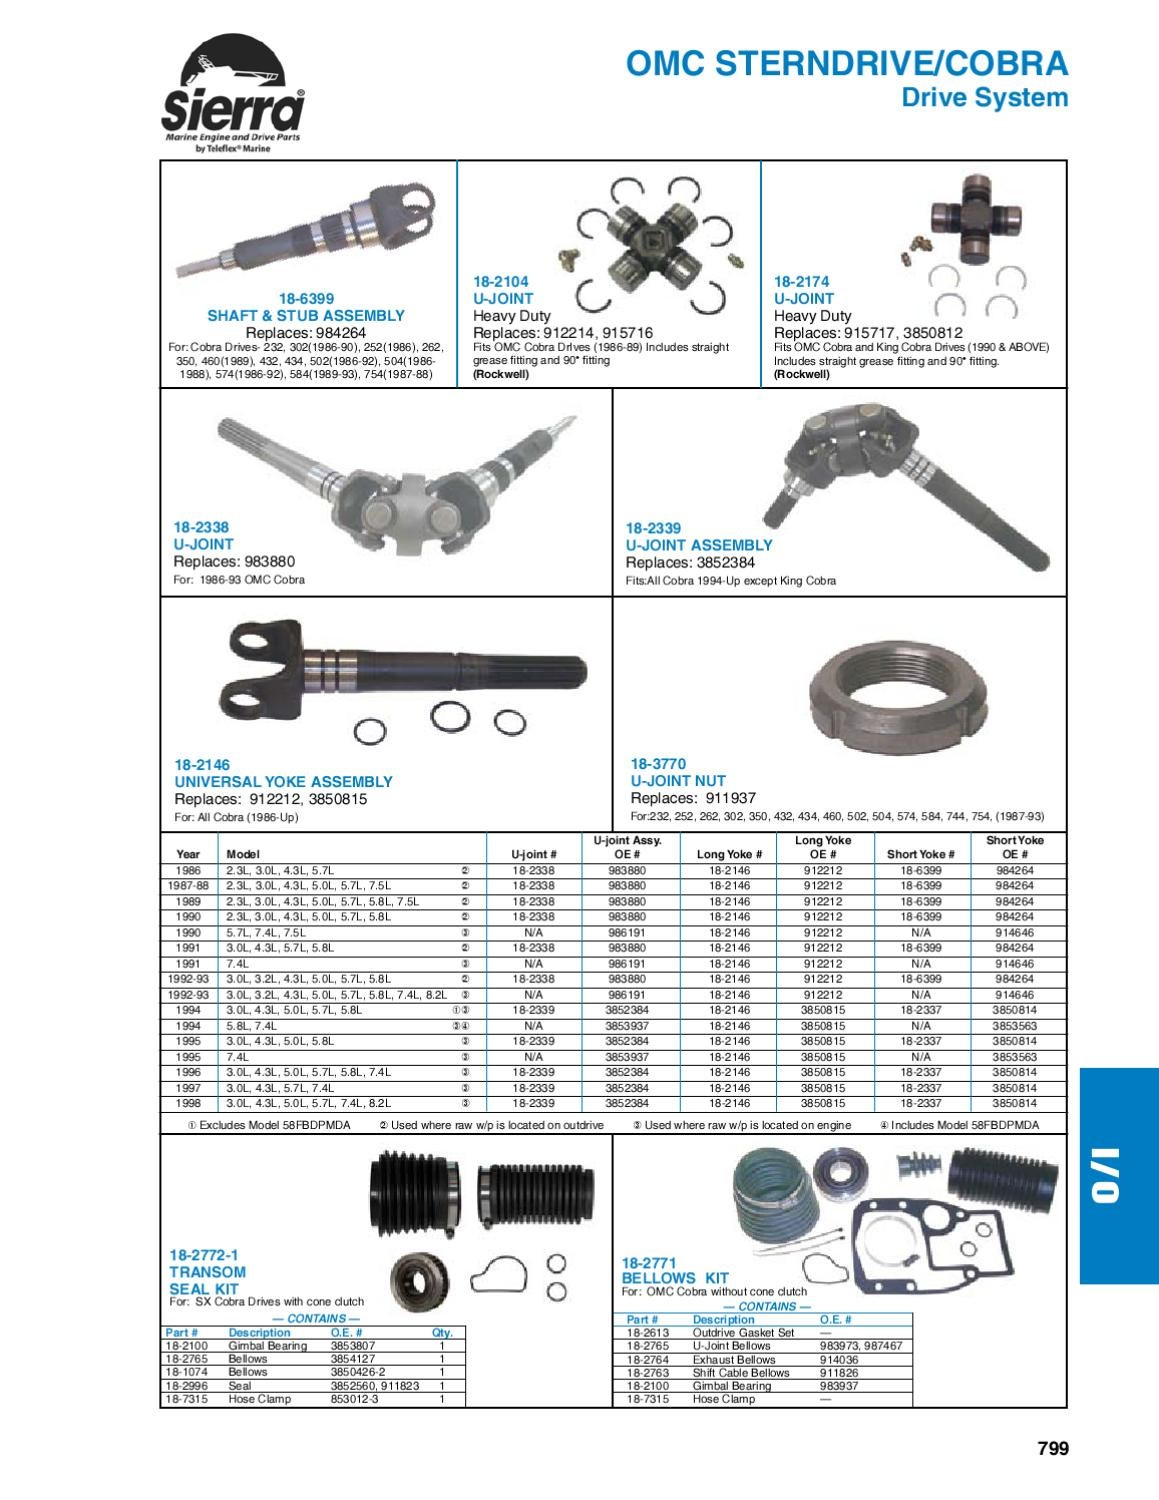 Sierra Marine Engine and Drive Parts for OMC Sterndrive